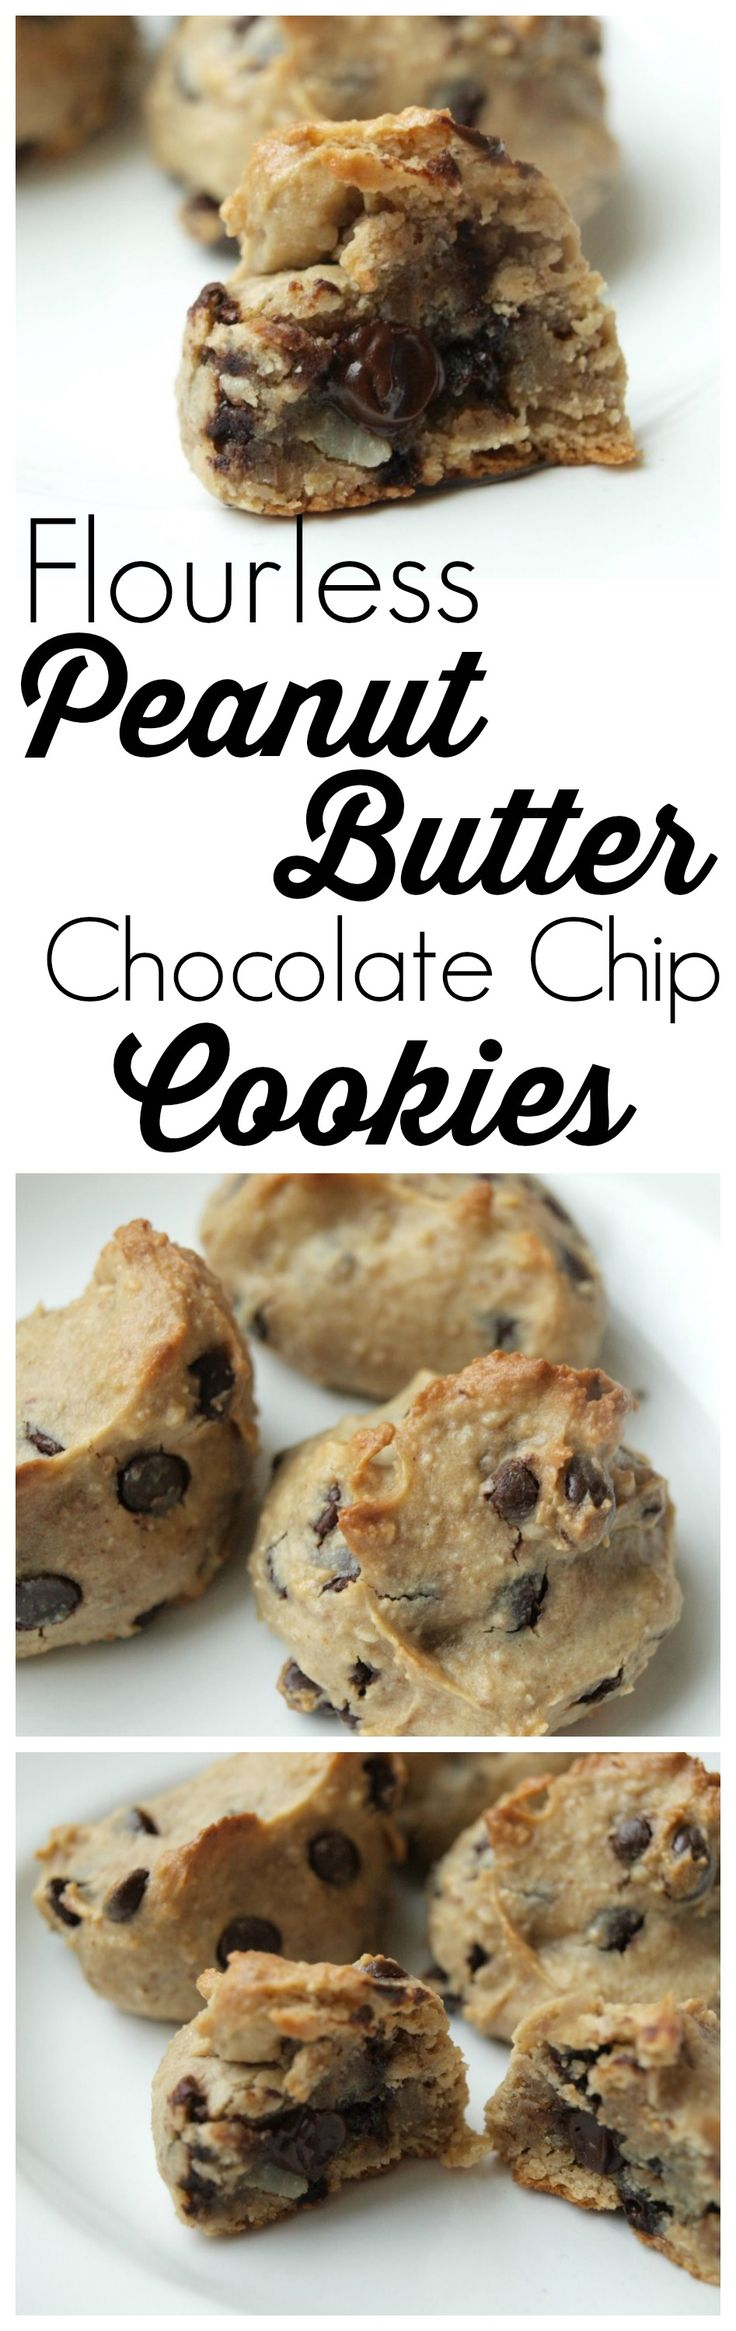 It's hard to believe these Peanut Butter Chocolate Chip Cookies are made with NO flour! They are delicious! There's also NO oil and NO refined sugar.  Amazing healthy recipe!